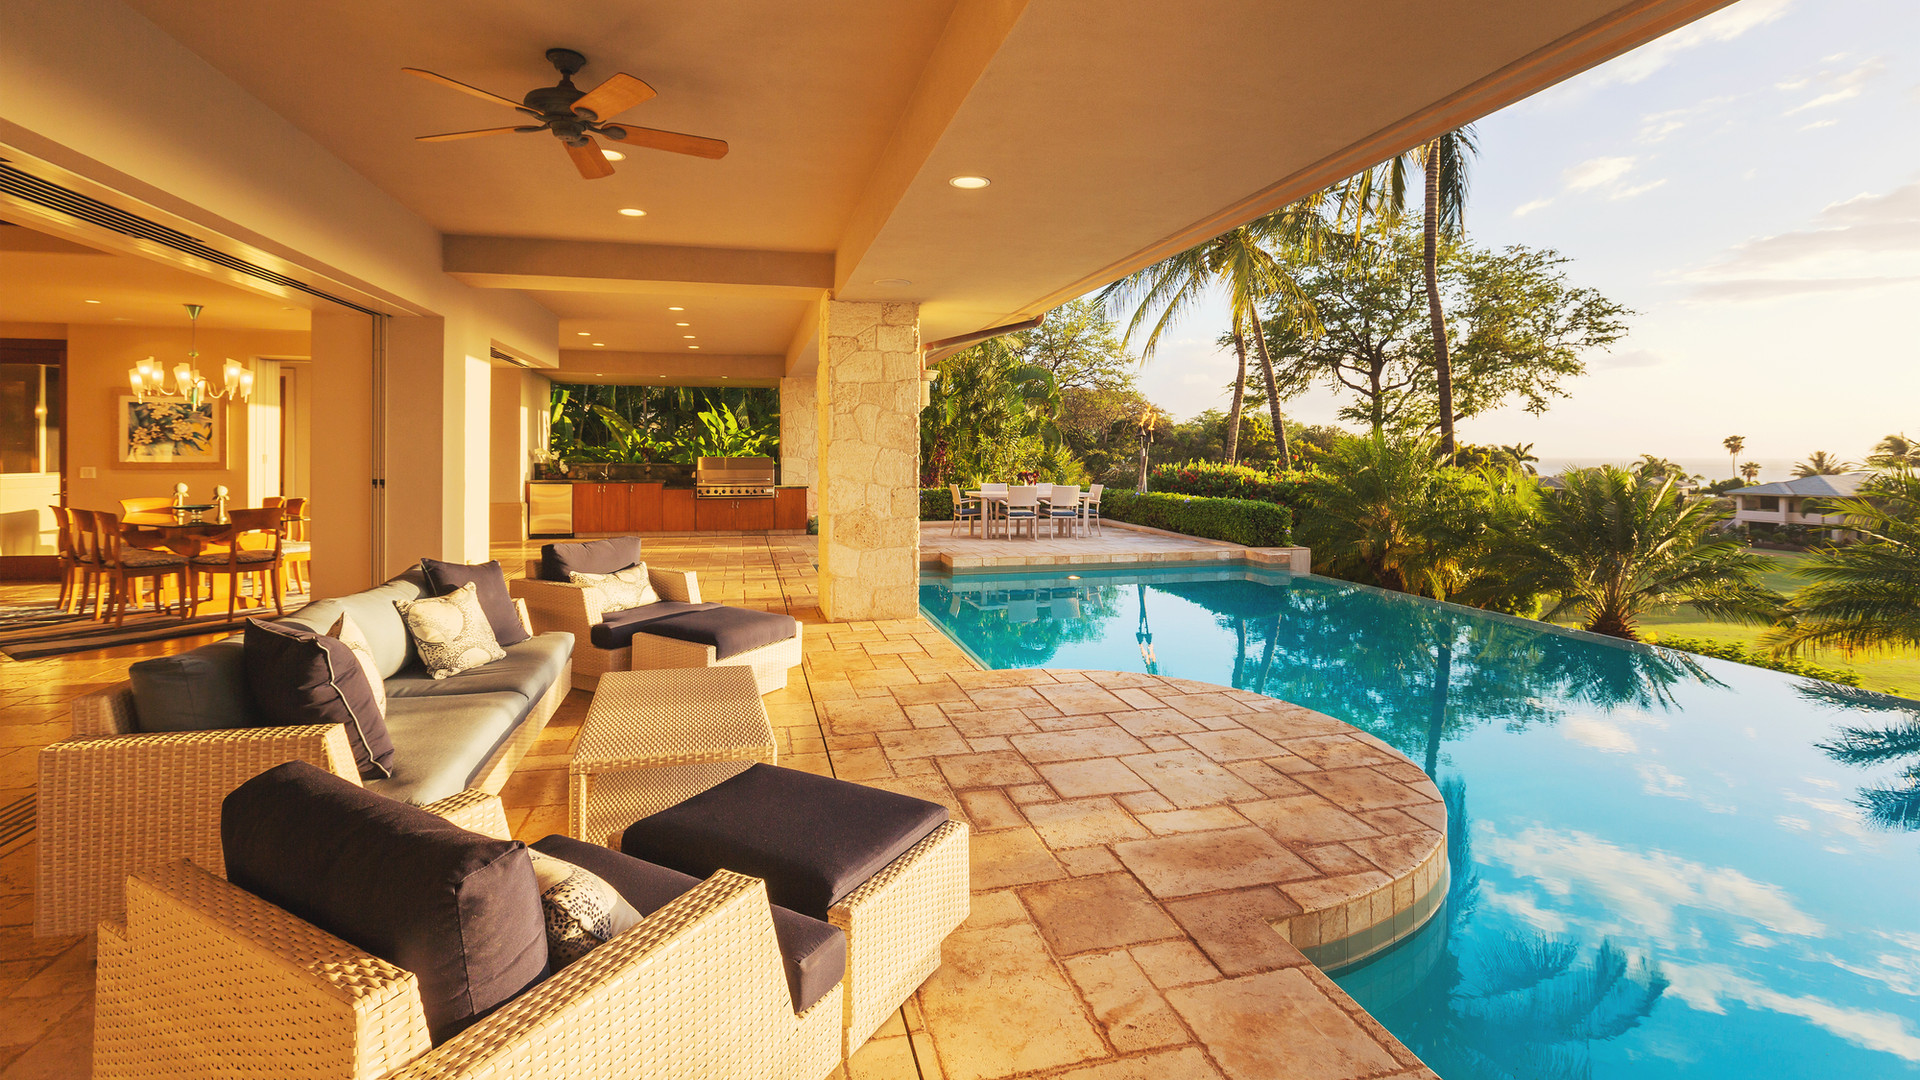 luxury-home-with-pool-at-sunset-56923520